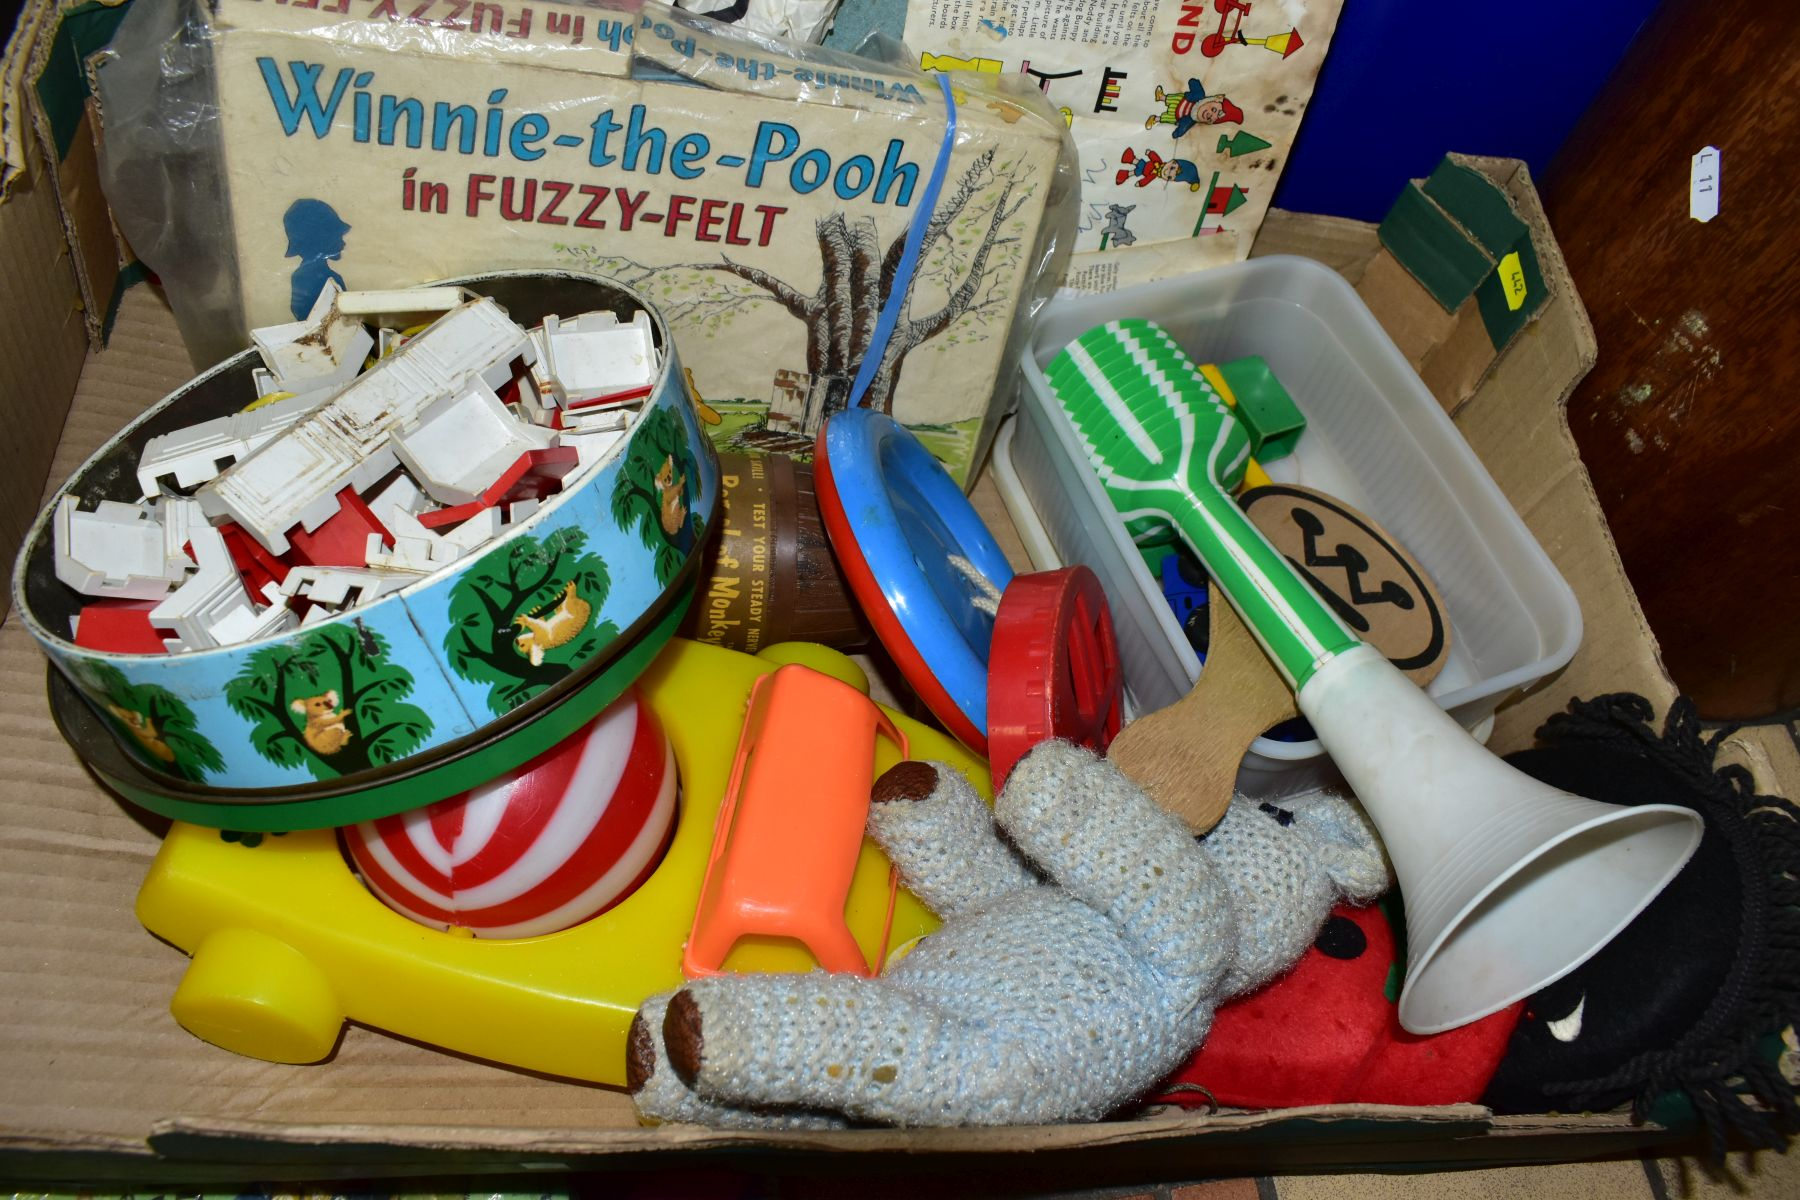 A QUANTITY OF YOUNG CHILDRENS TOYS, to include Winnie-the-Pooh and other Fuzzy-Felt sets, contents - Image 4 of 4